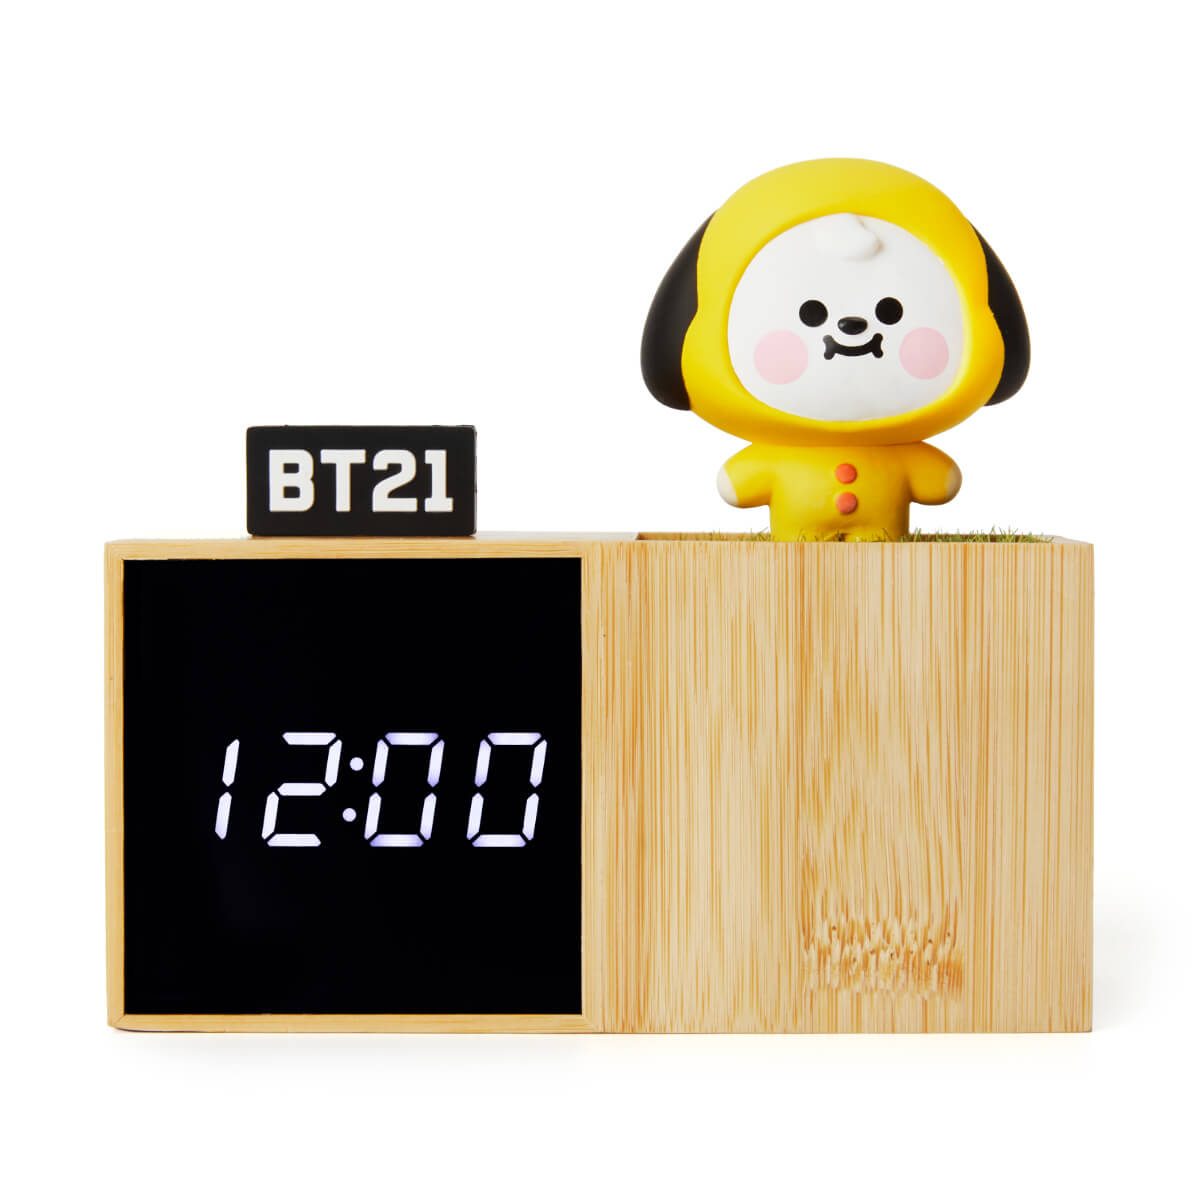 BT21 CHIMMY BABY Digital Desk Clock